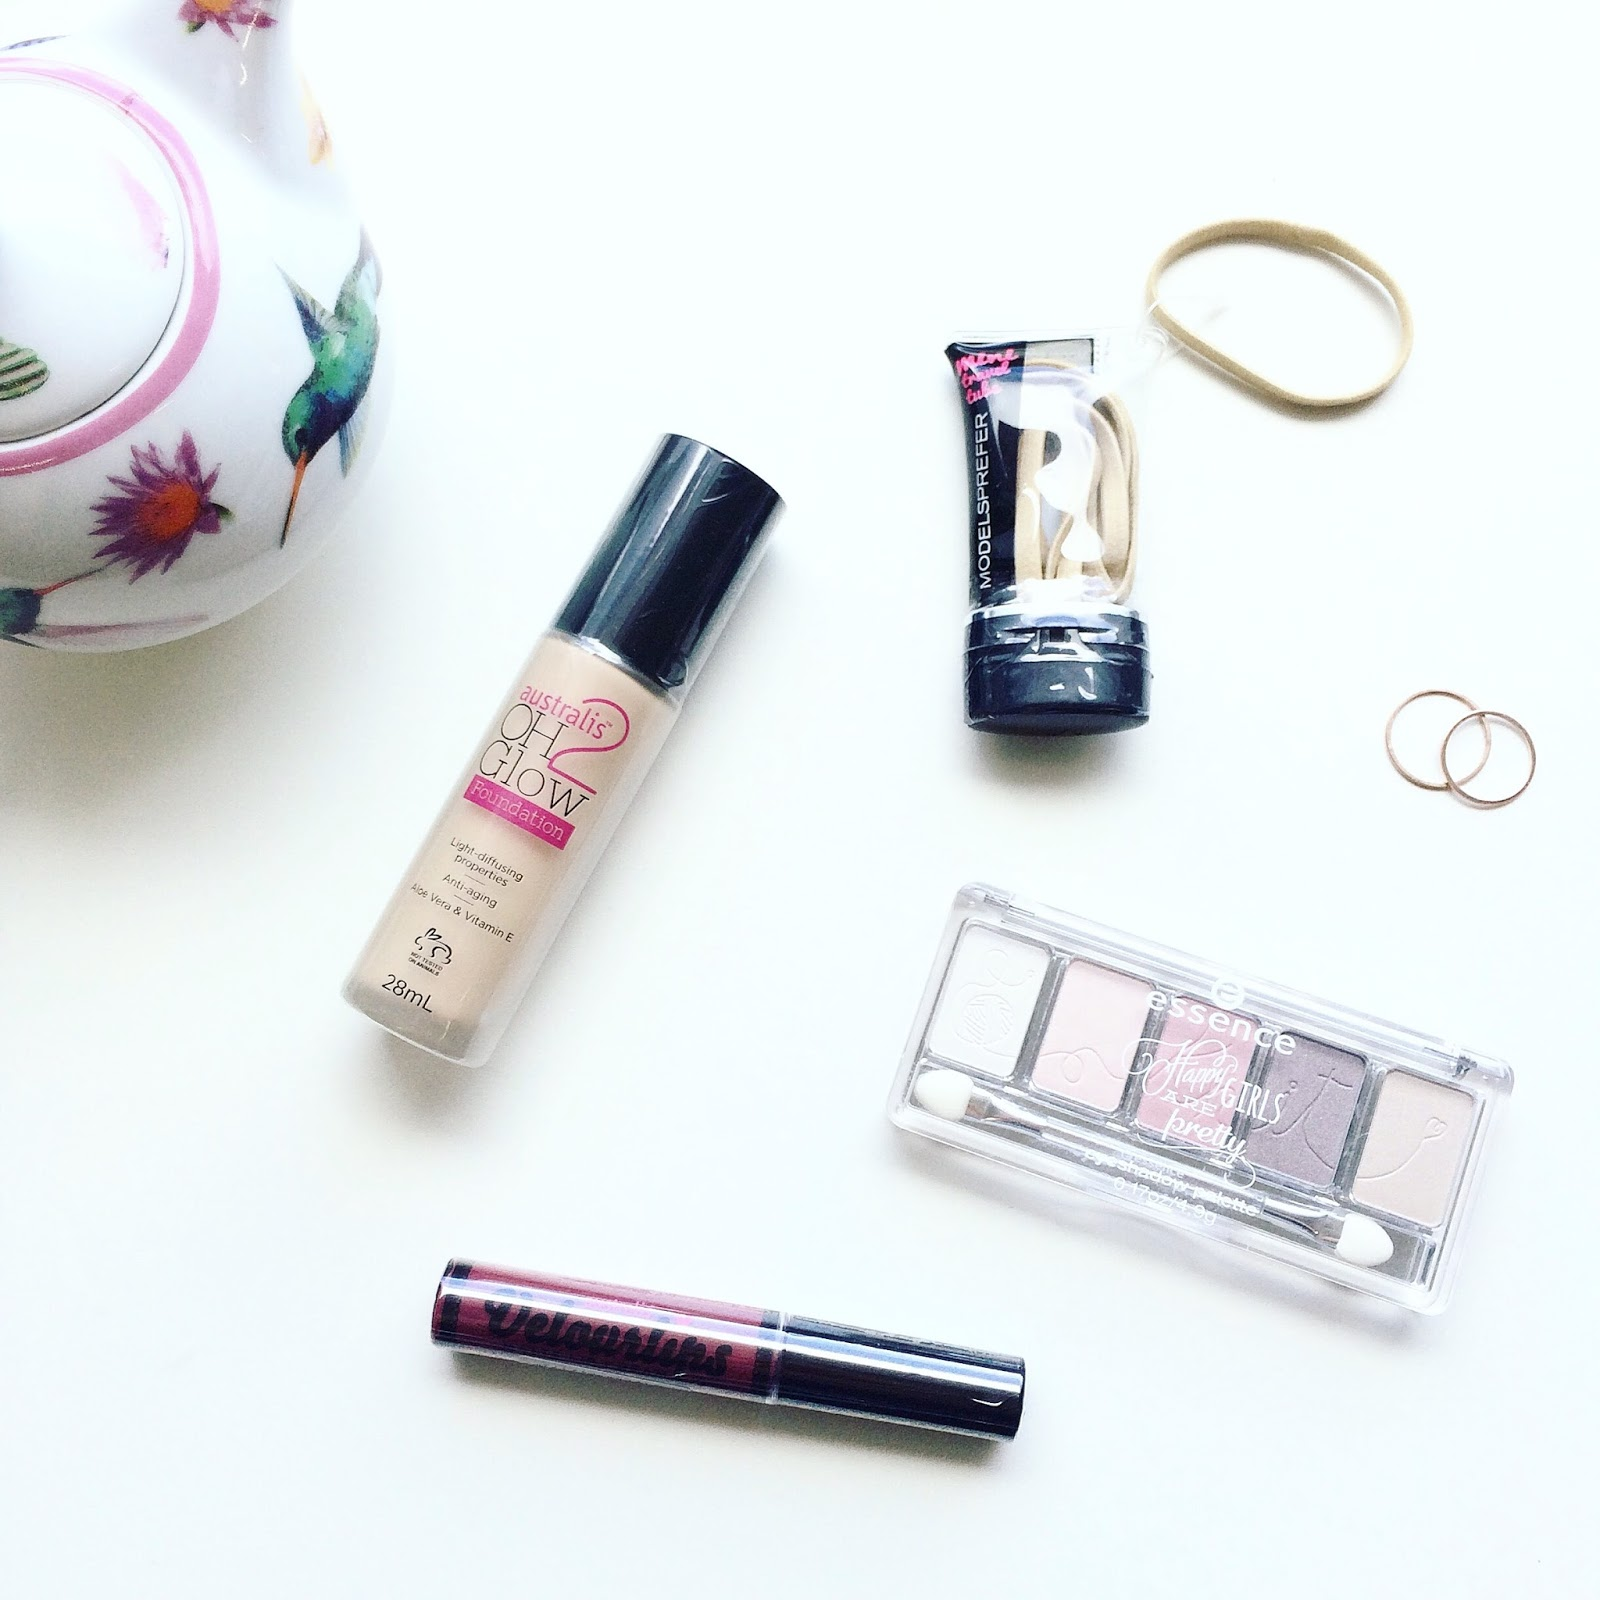 f5adc668169 Not Another] Priceline Sale Haul - Almost Posh